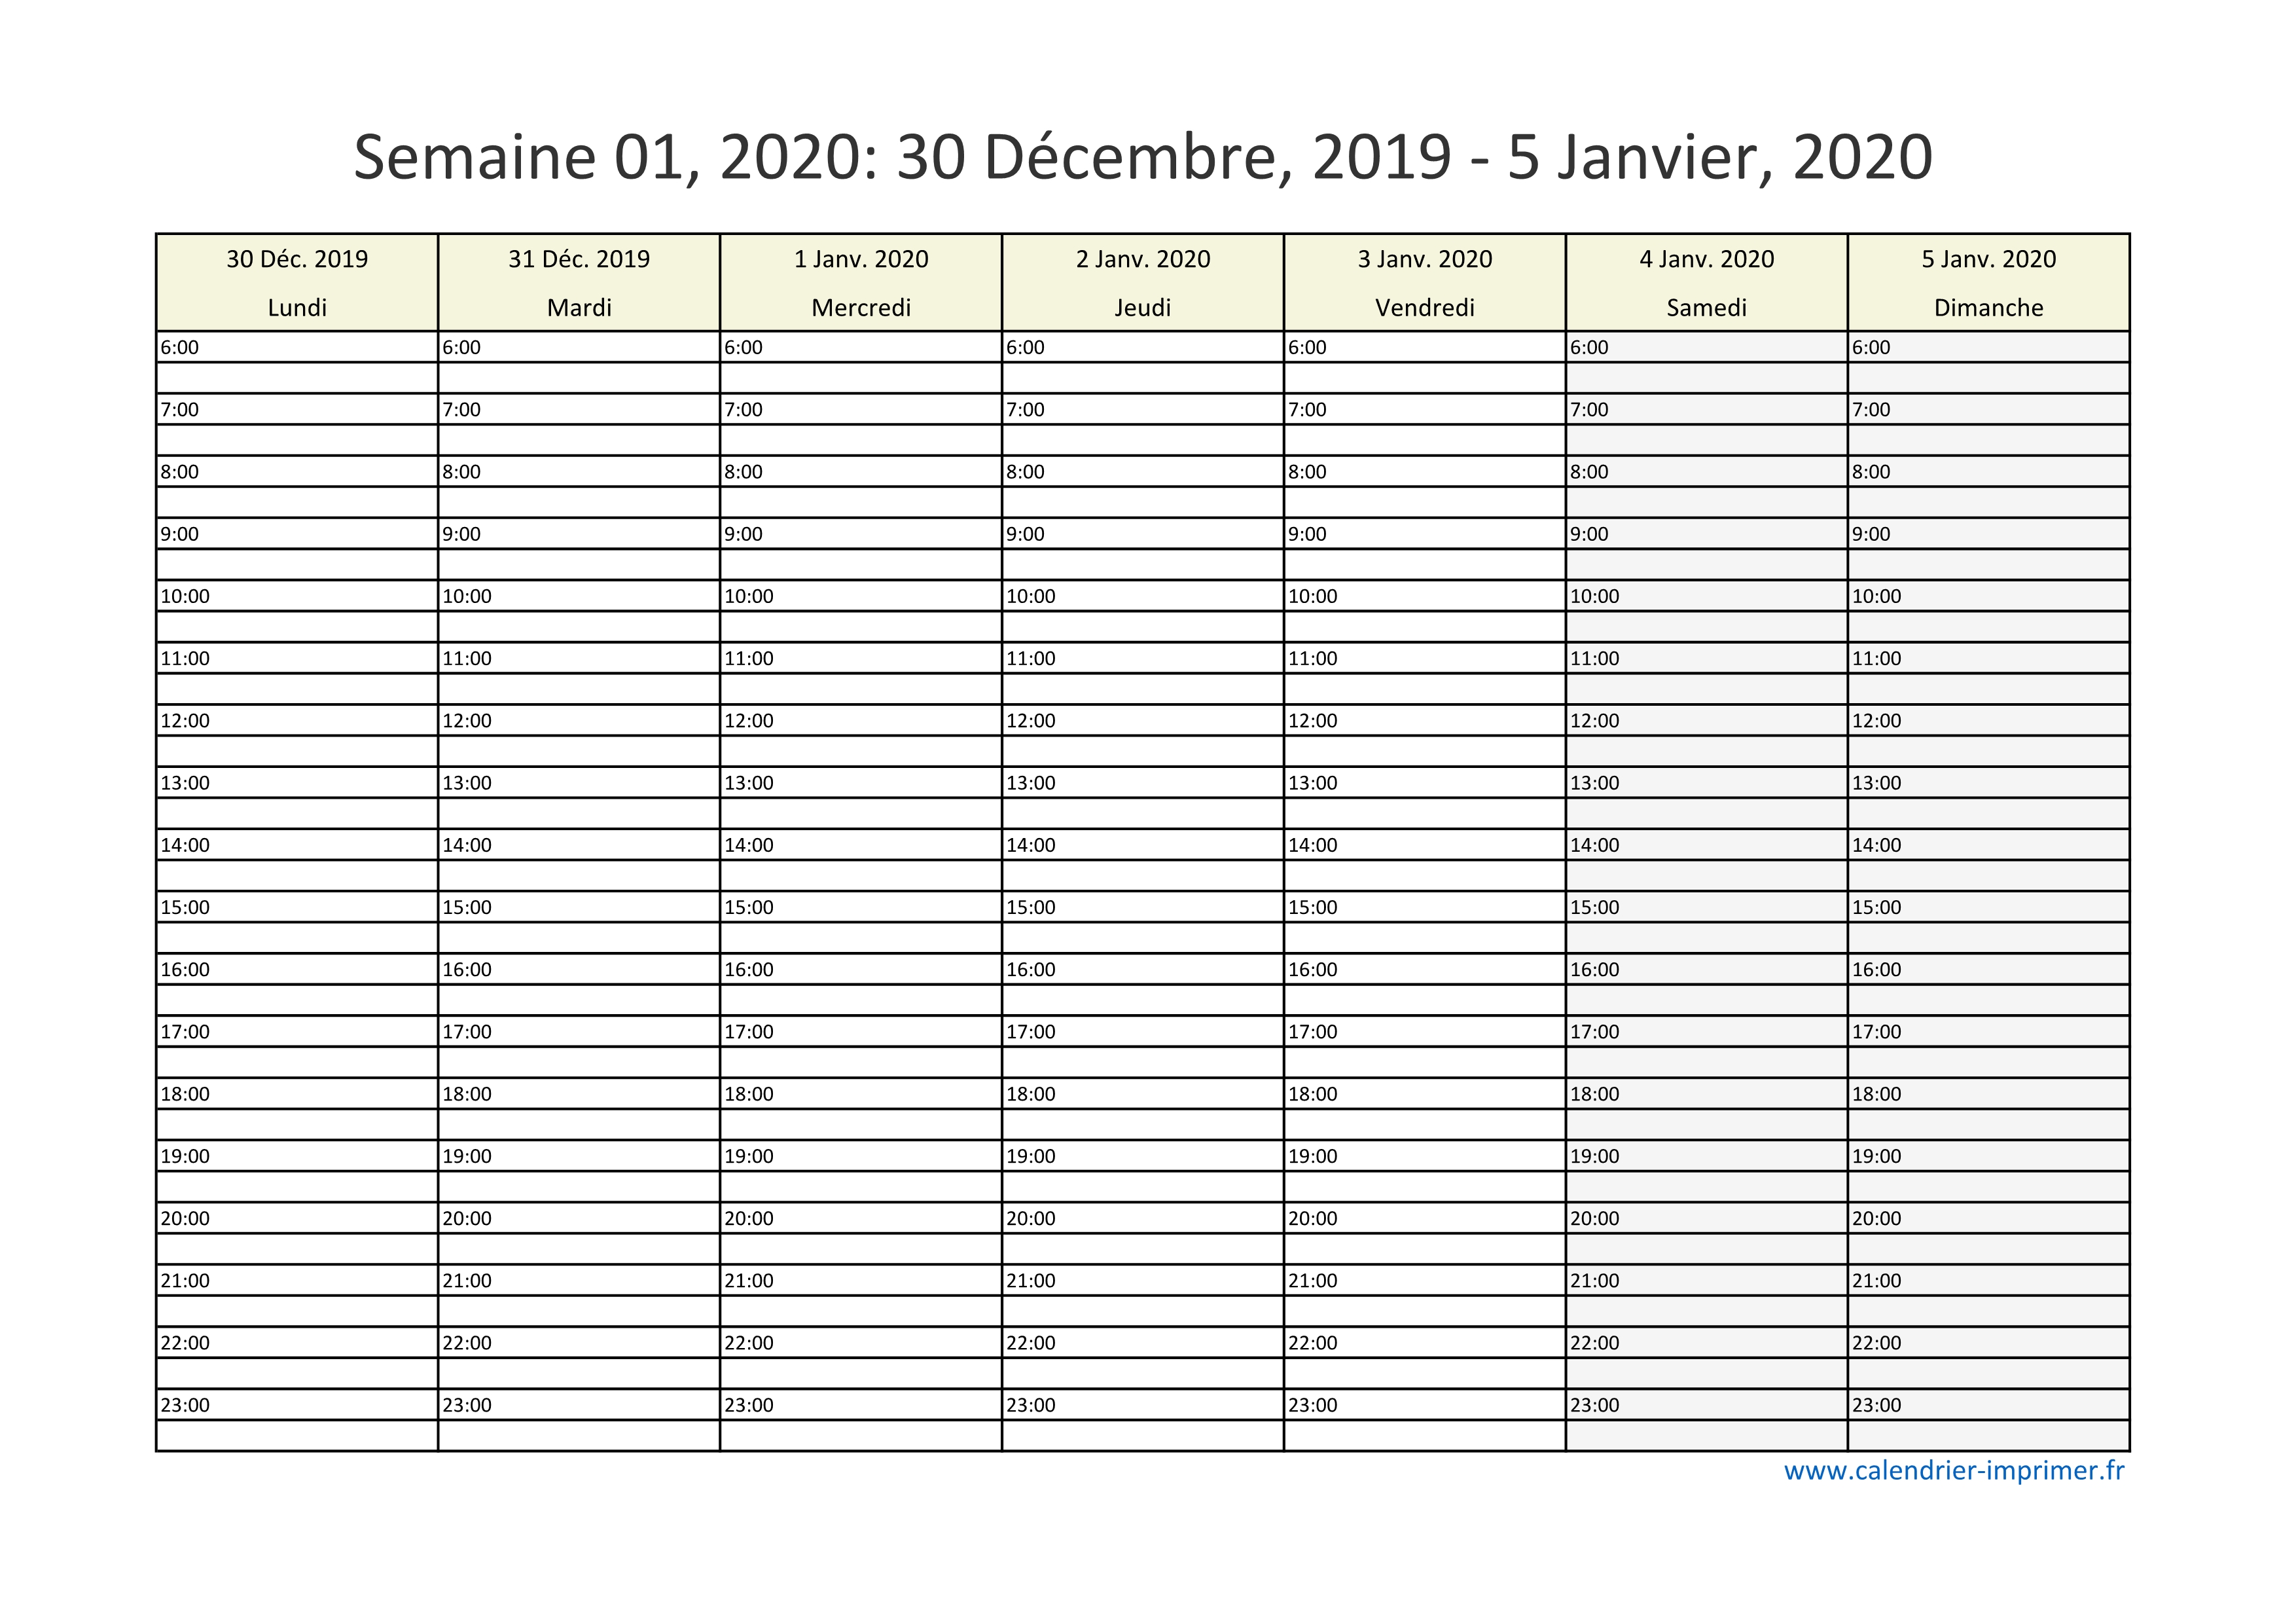 Calendrier 2020 Excell.Calendrier 2020 Semaine Planning Hebdomadaire Semainier